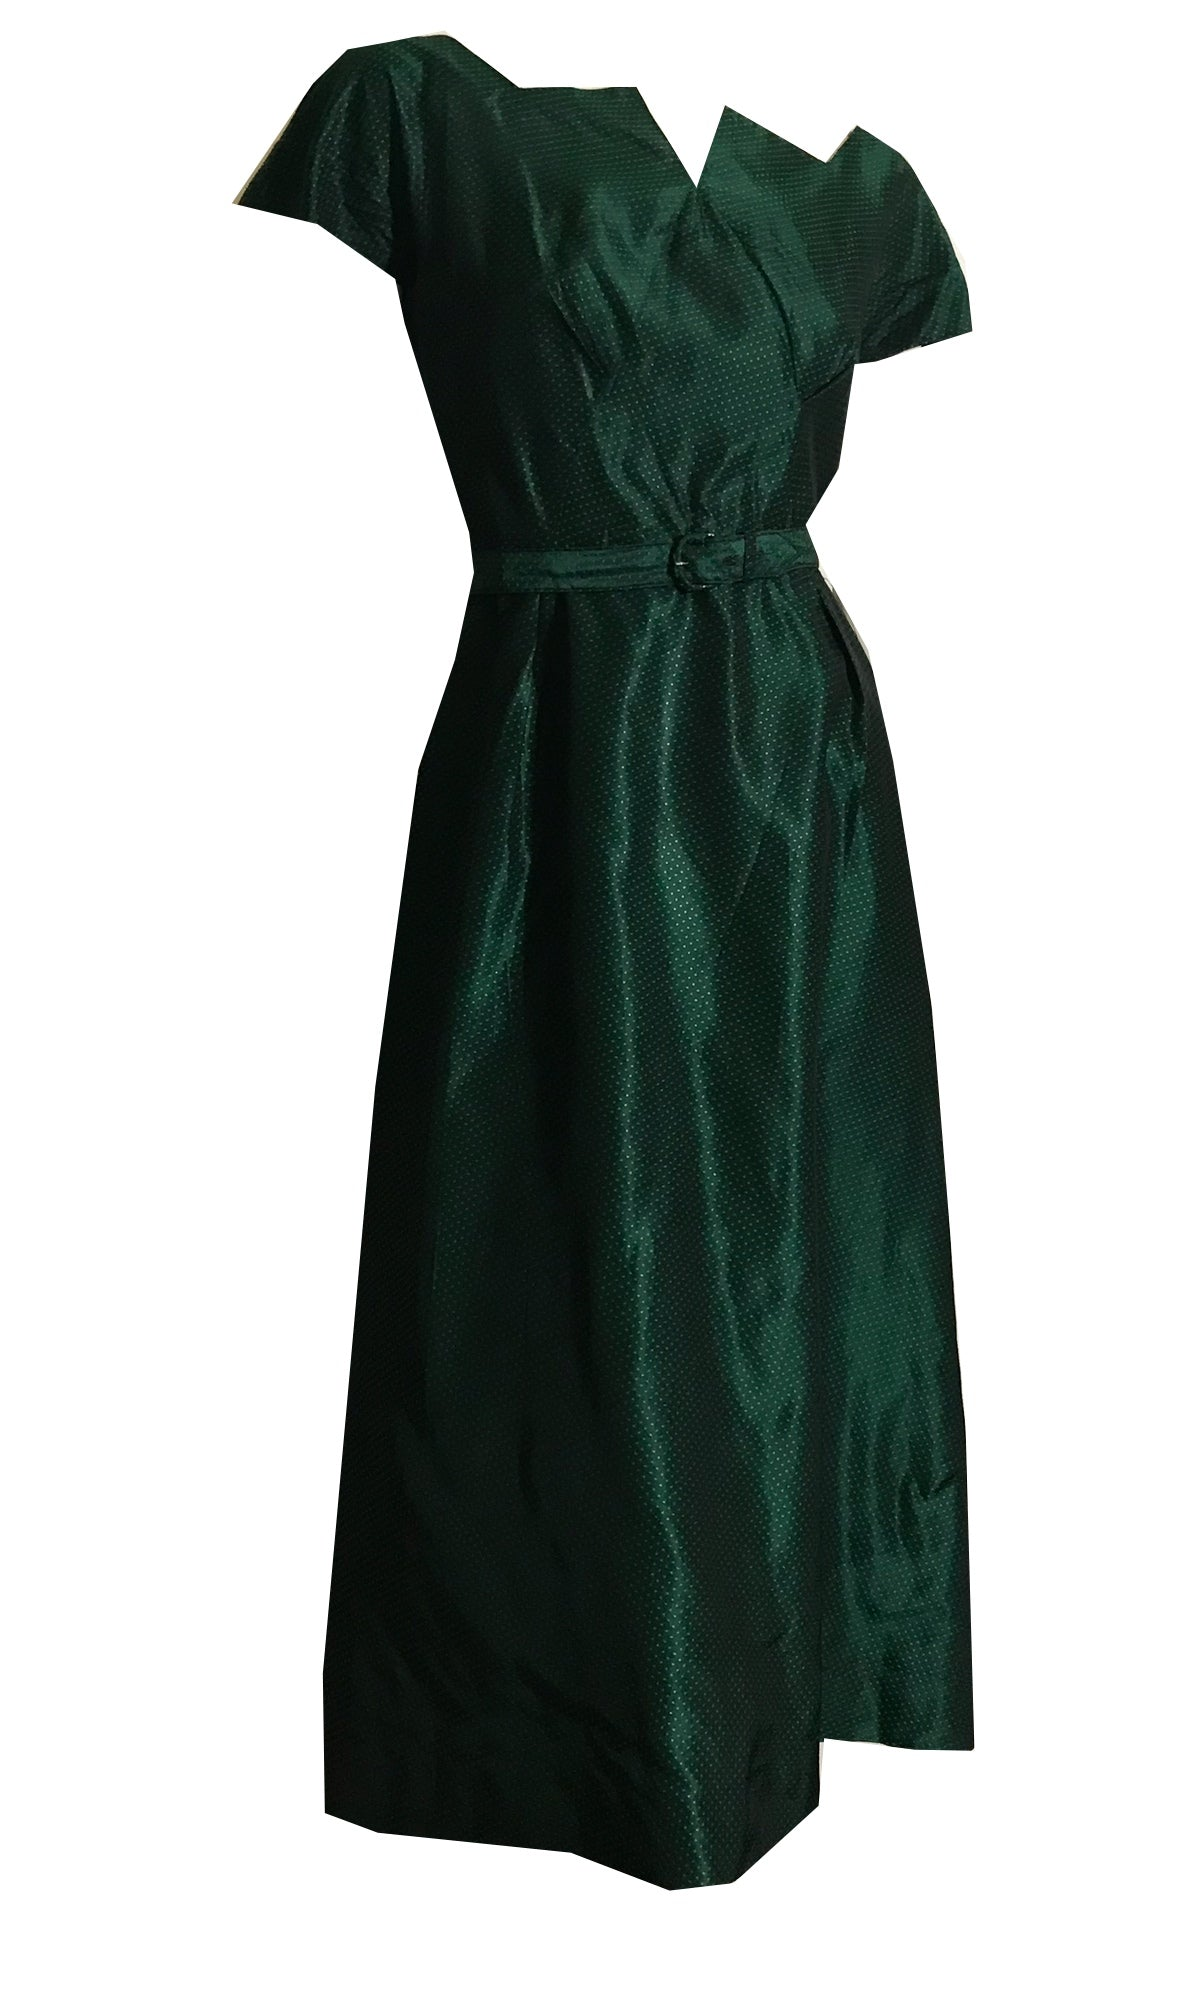 Peaked Neckline Emerald Green and Black Taffeta Cocktail Dress circa 1950s